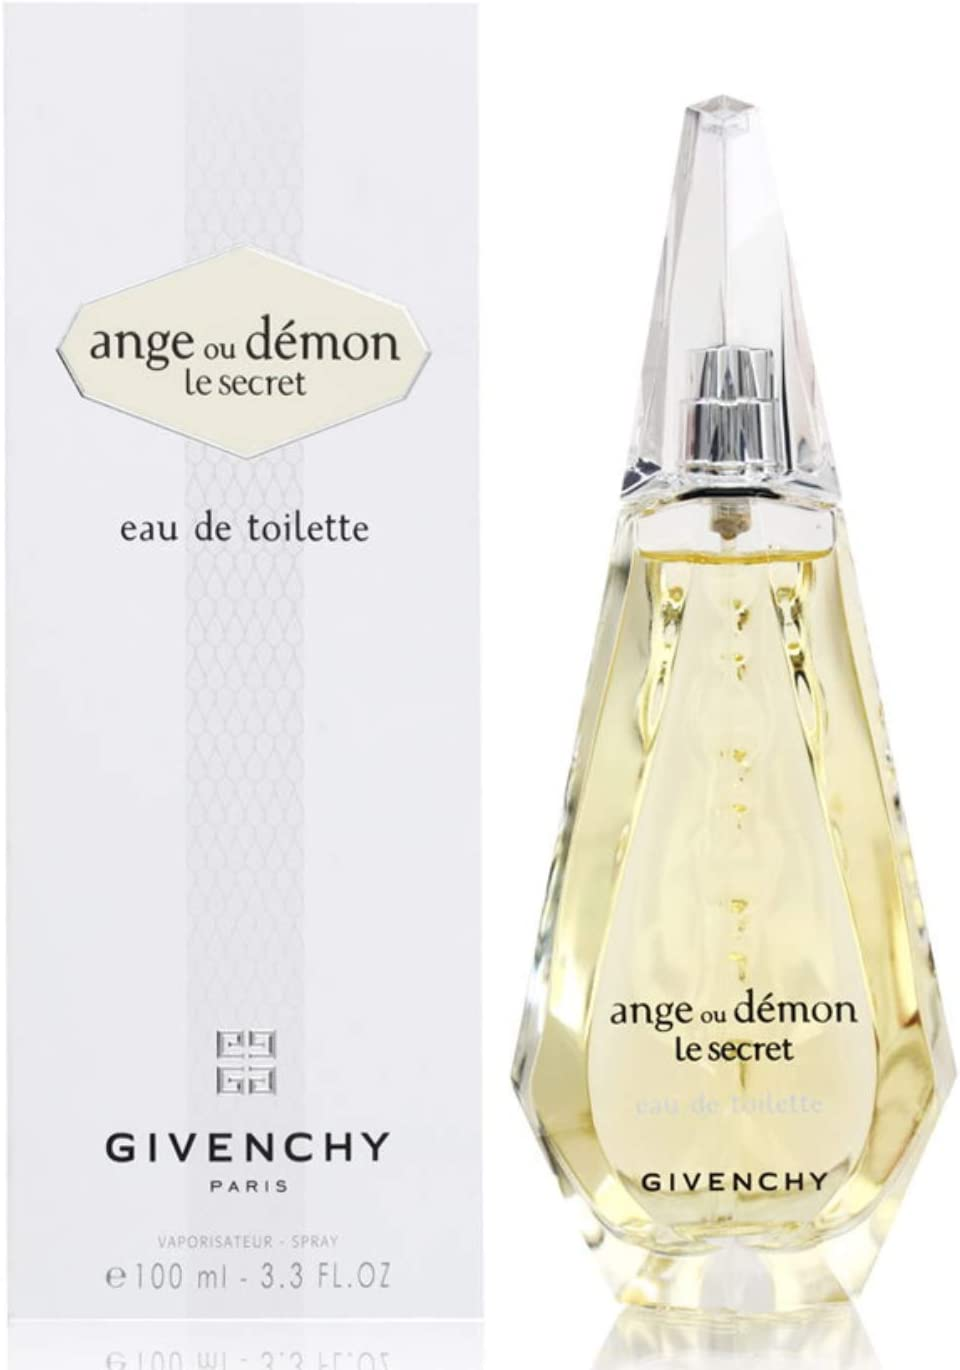 Givenchy Mujer Ange Demon ou Le Secret 30 ml EDT Eau de Toilette Spray UK